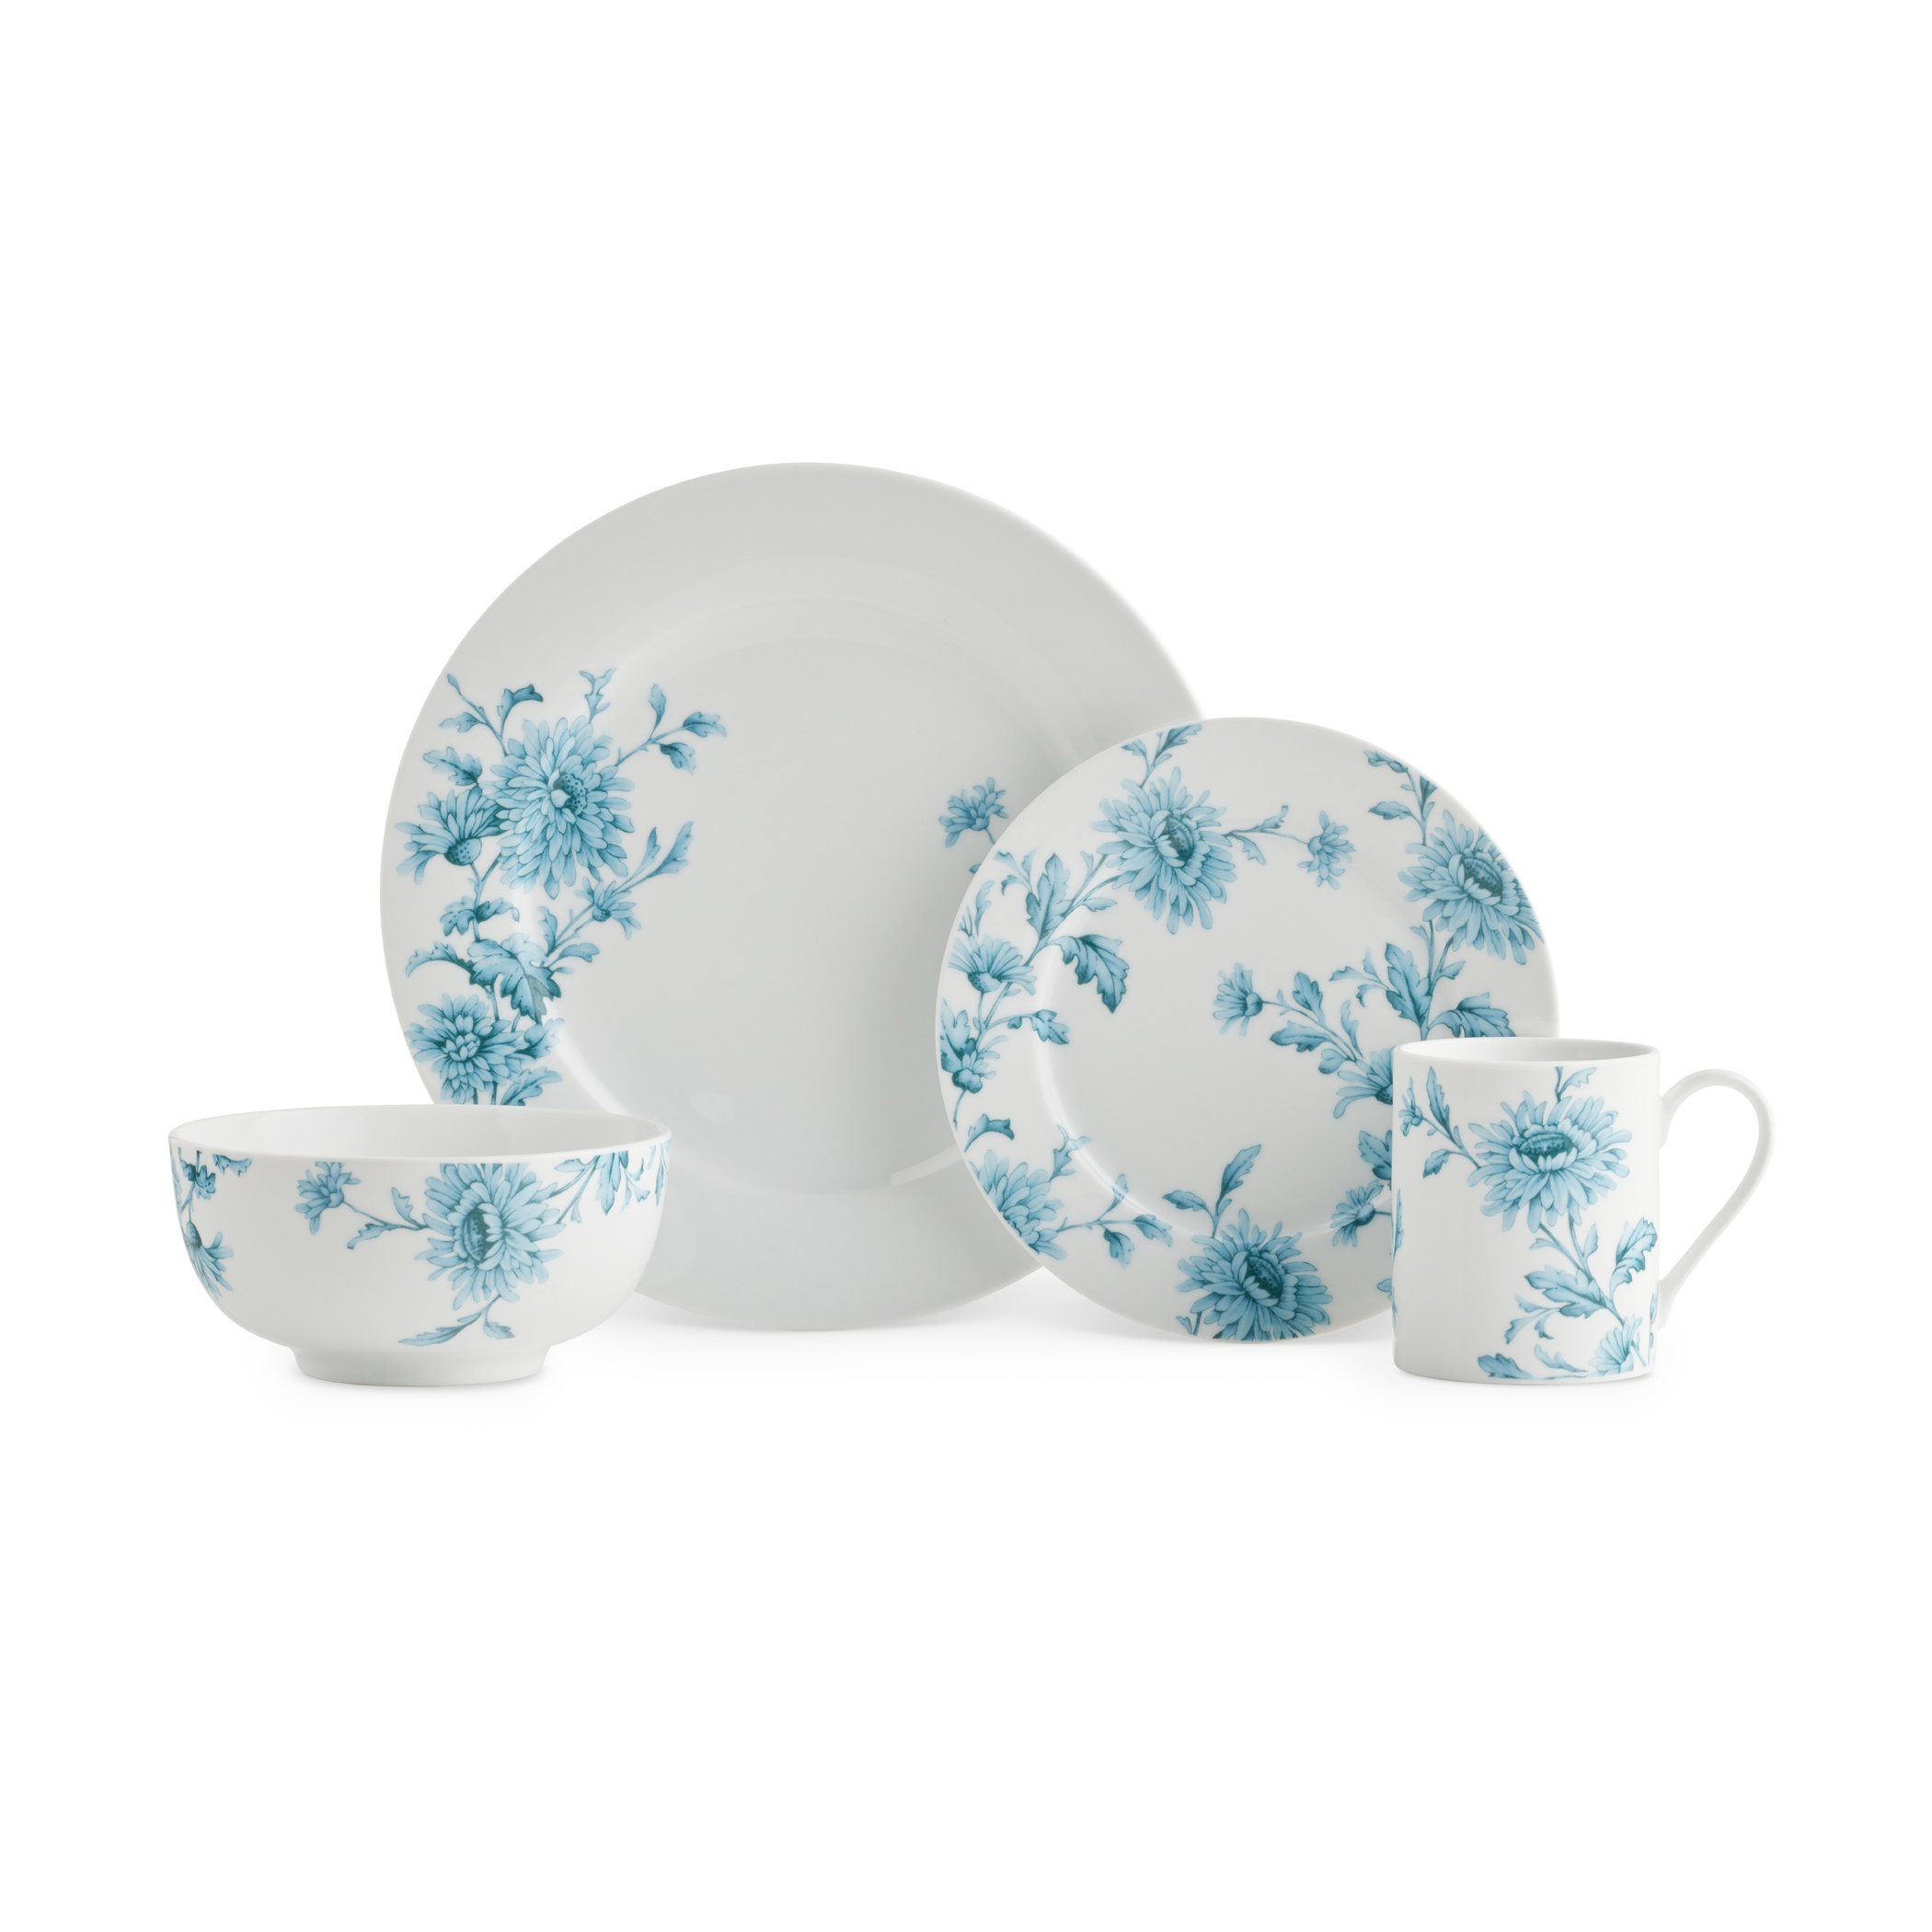 Spode Home Vintage Denim 16-piece Set image number 0